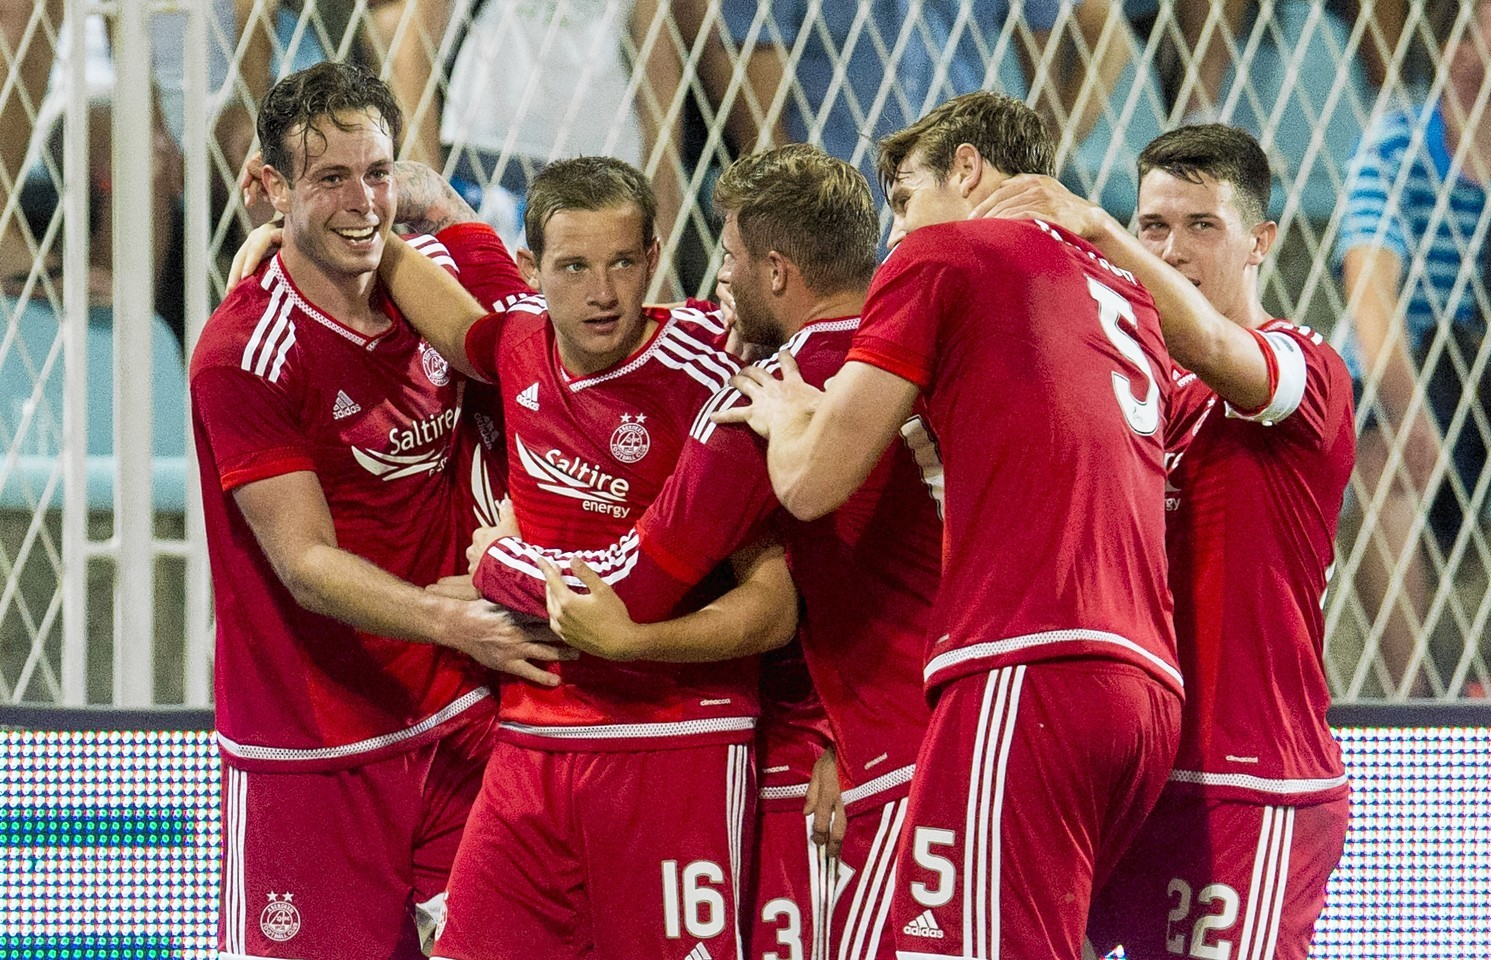 Andy Considine (left) celebrates after putting the Dons 1-0 ahead against Rejika